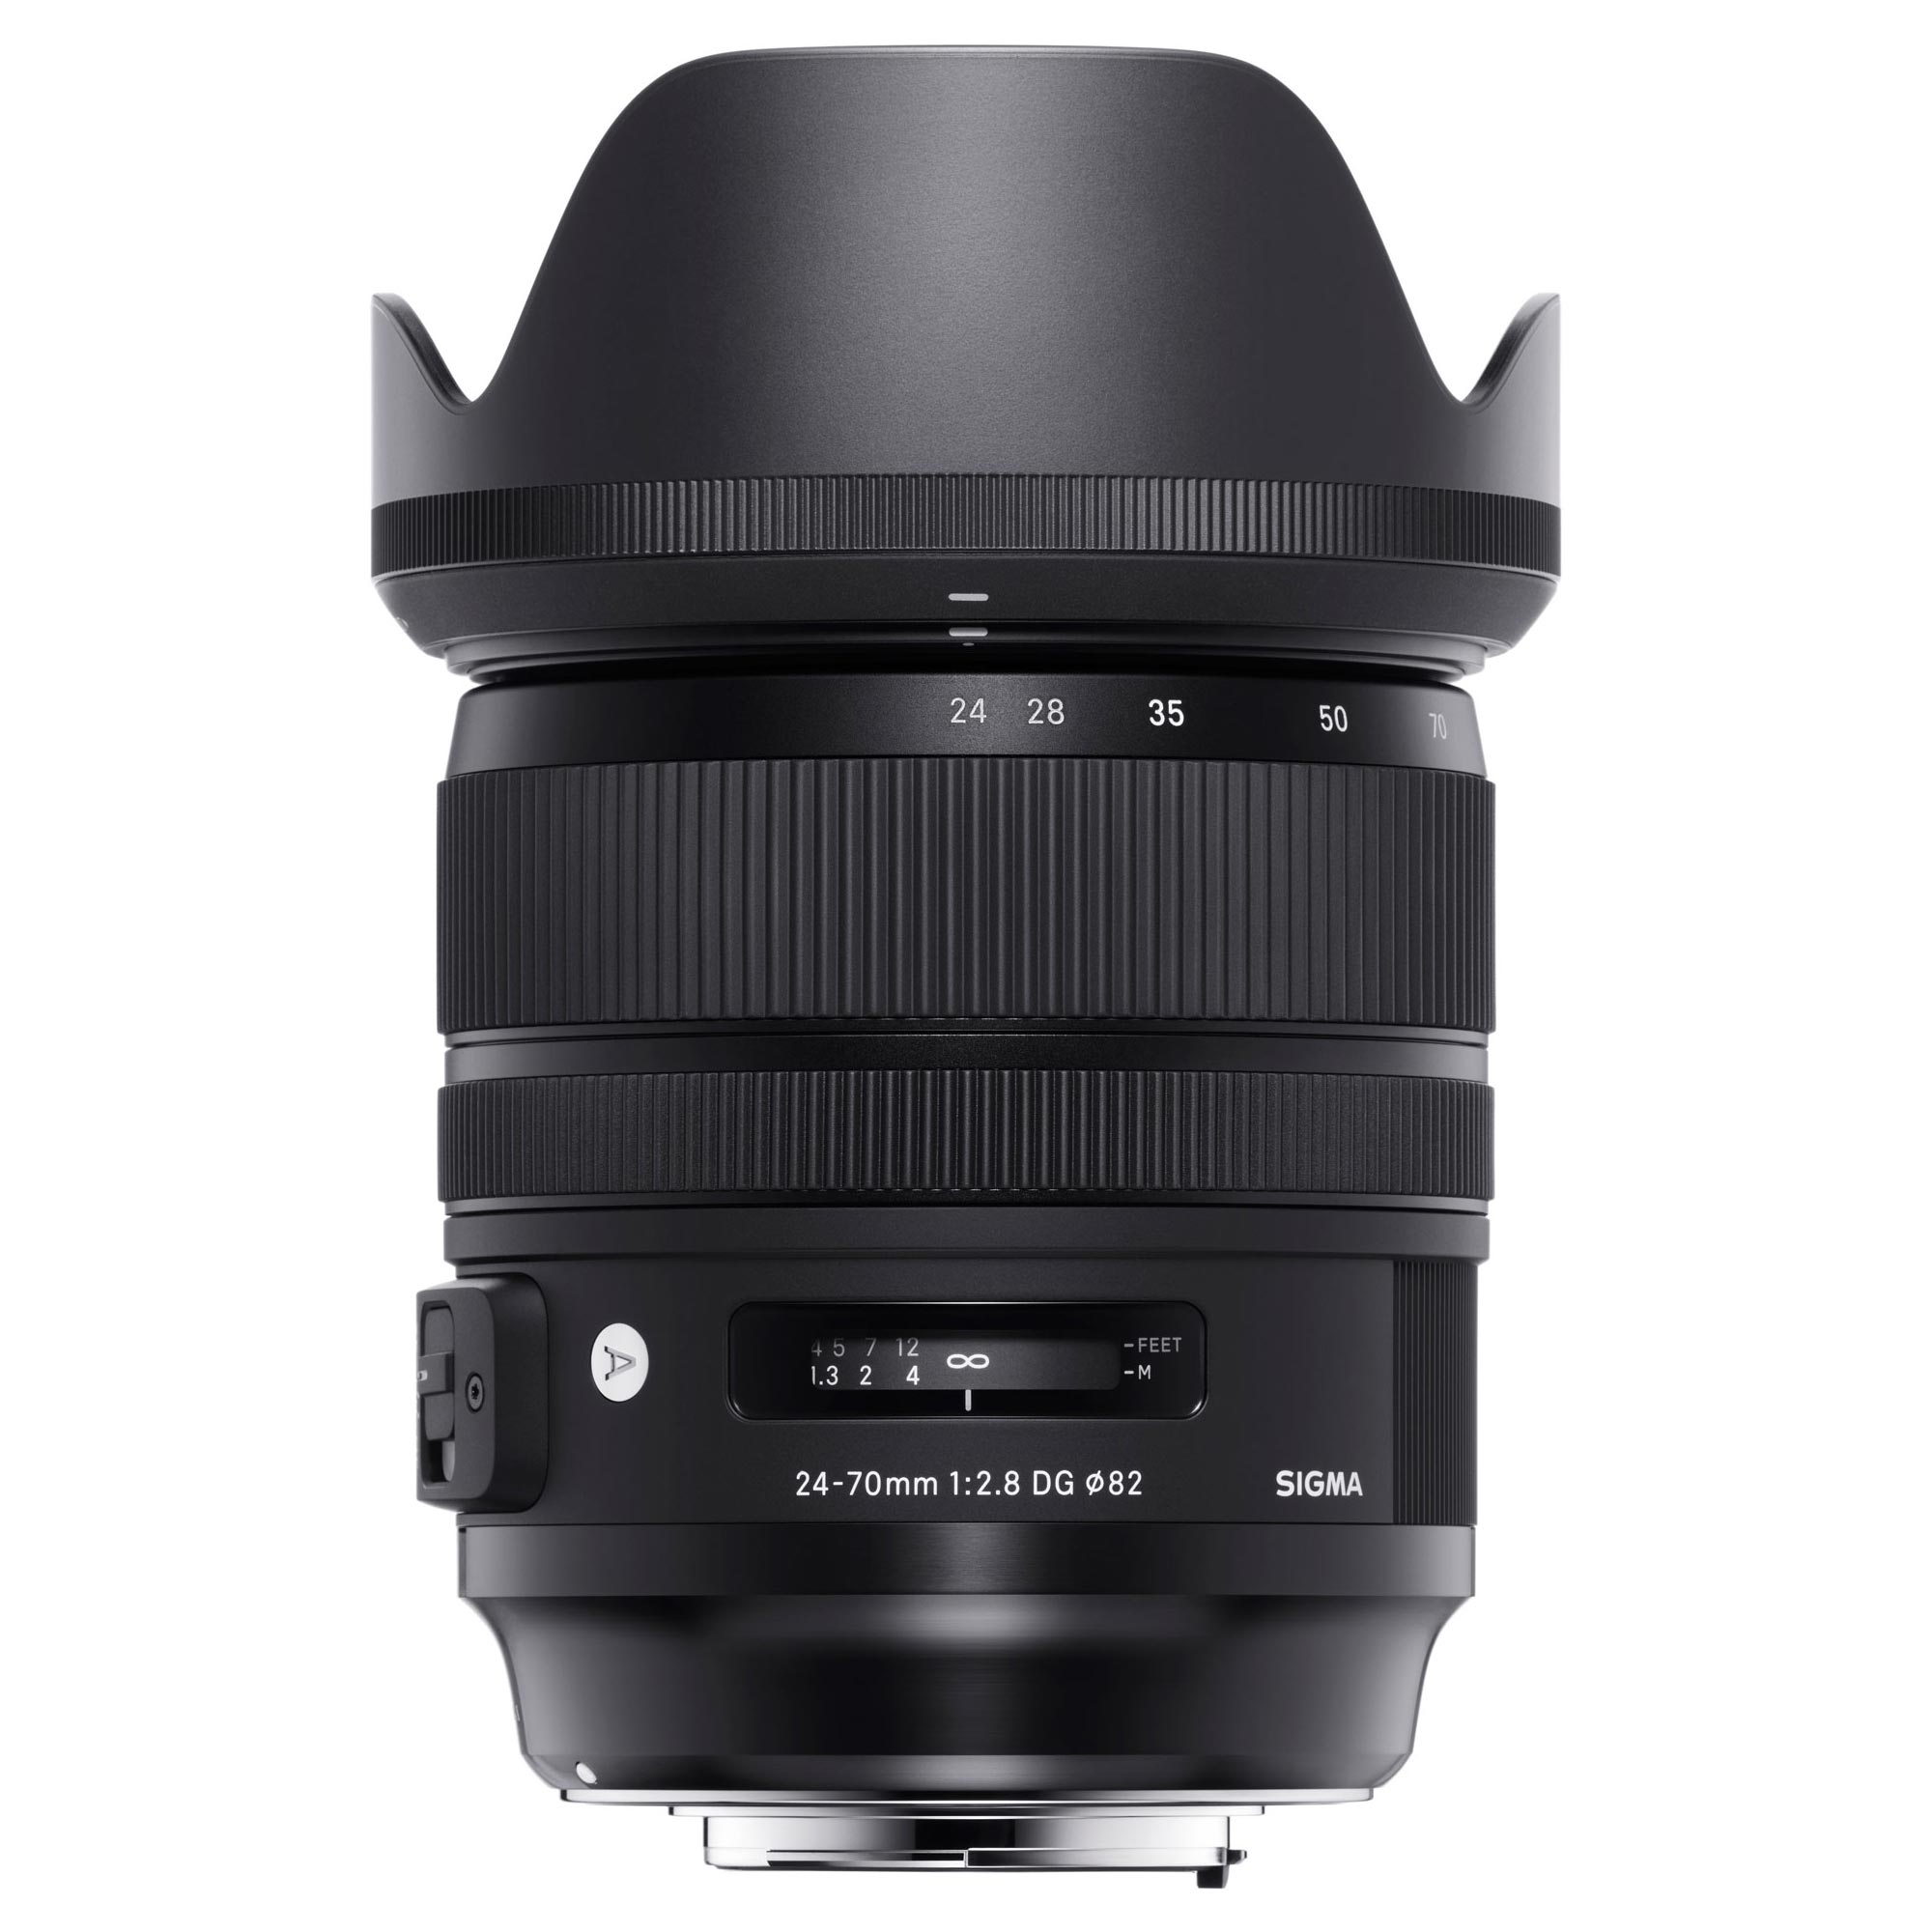 Le 24-70mm F2.8 enfin en version Art